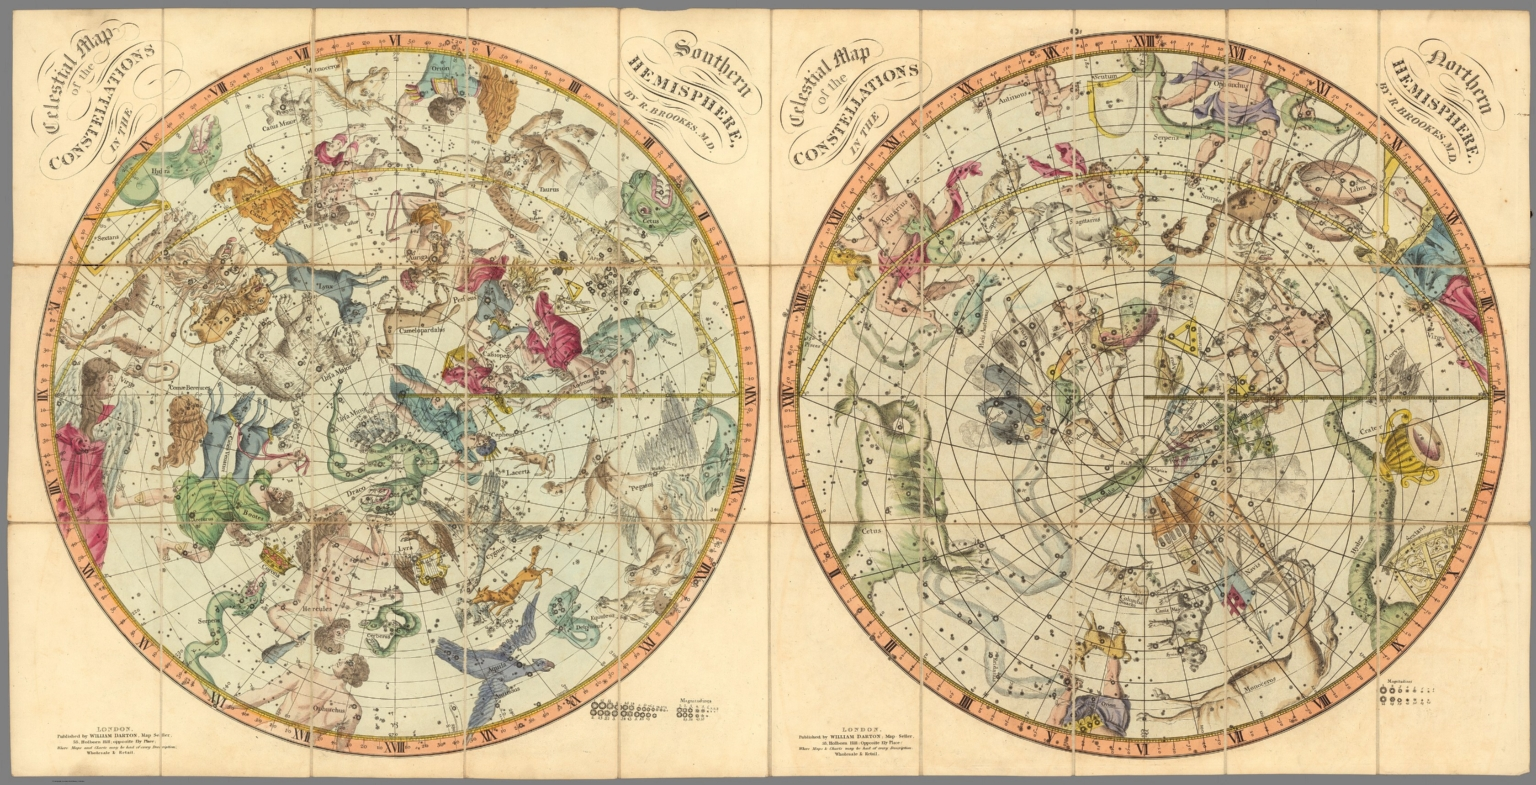 Celestial maps of the constellations in the Northern and Southern